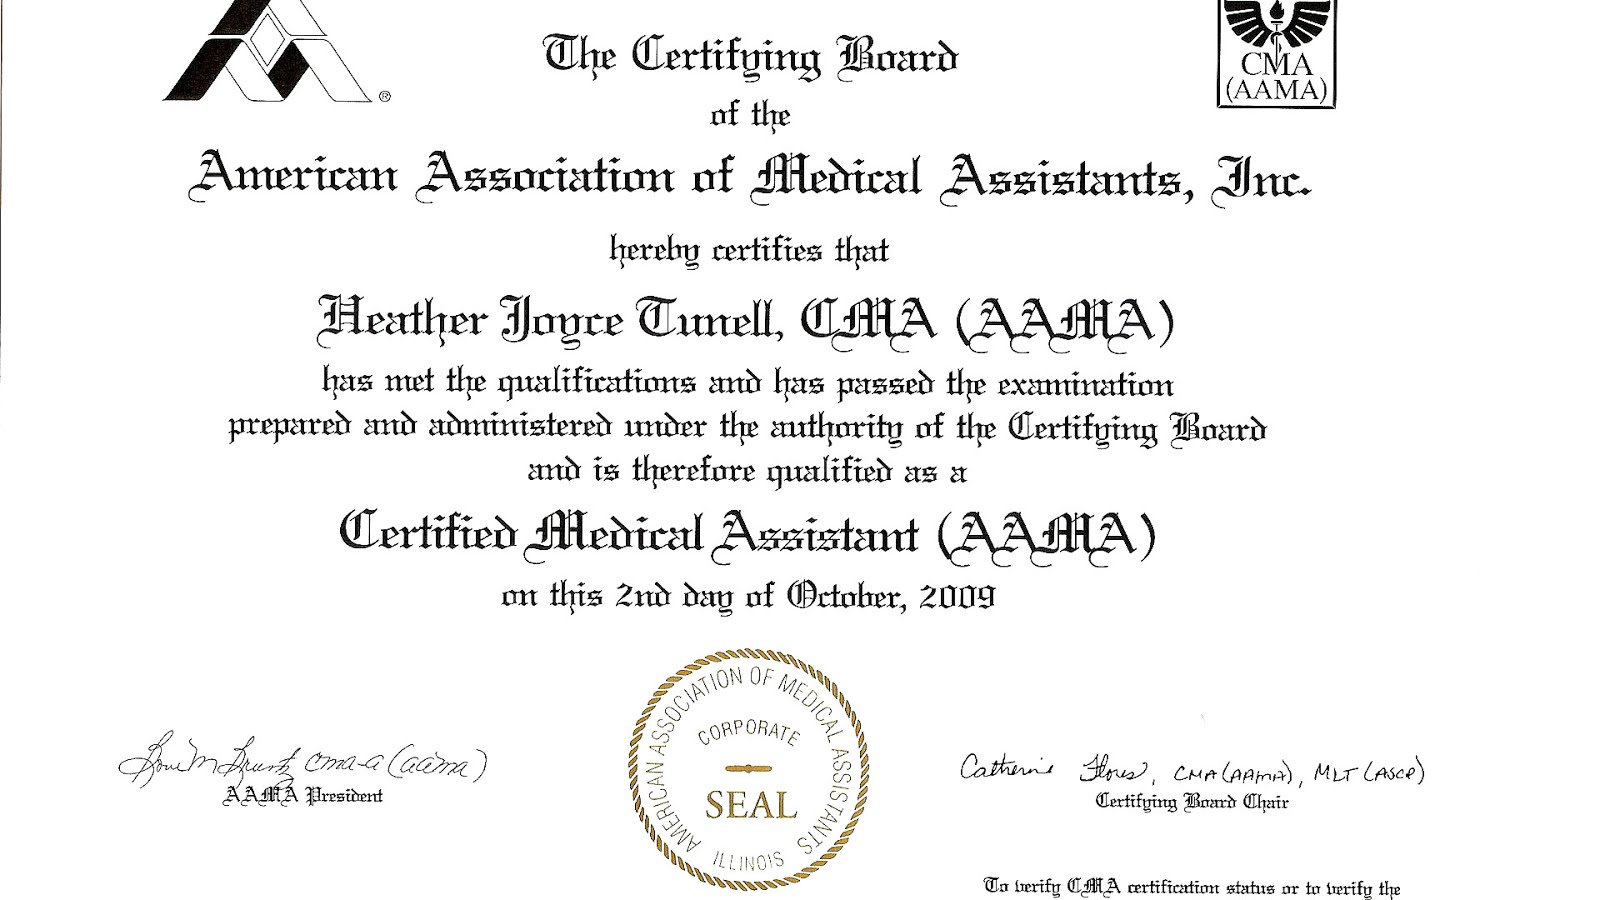 American association of medical assistants 1betcityfo Image collections